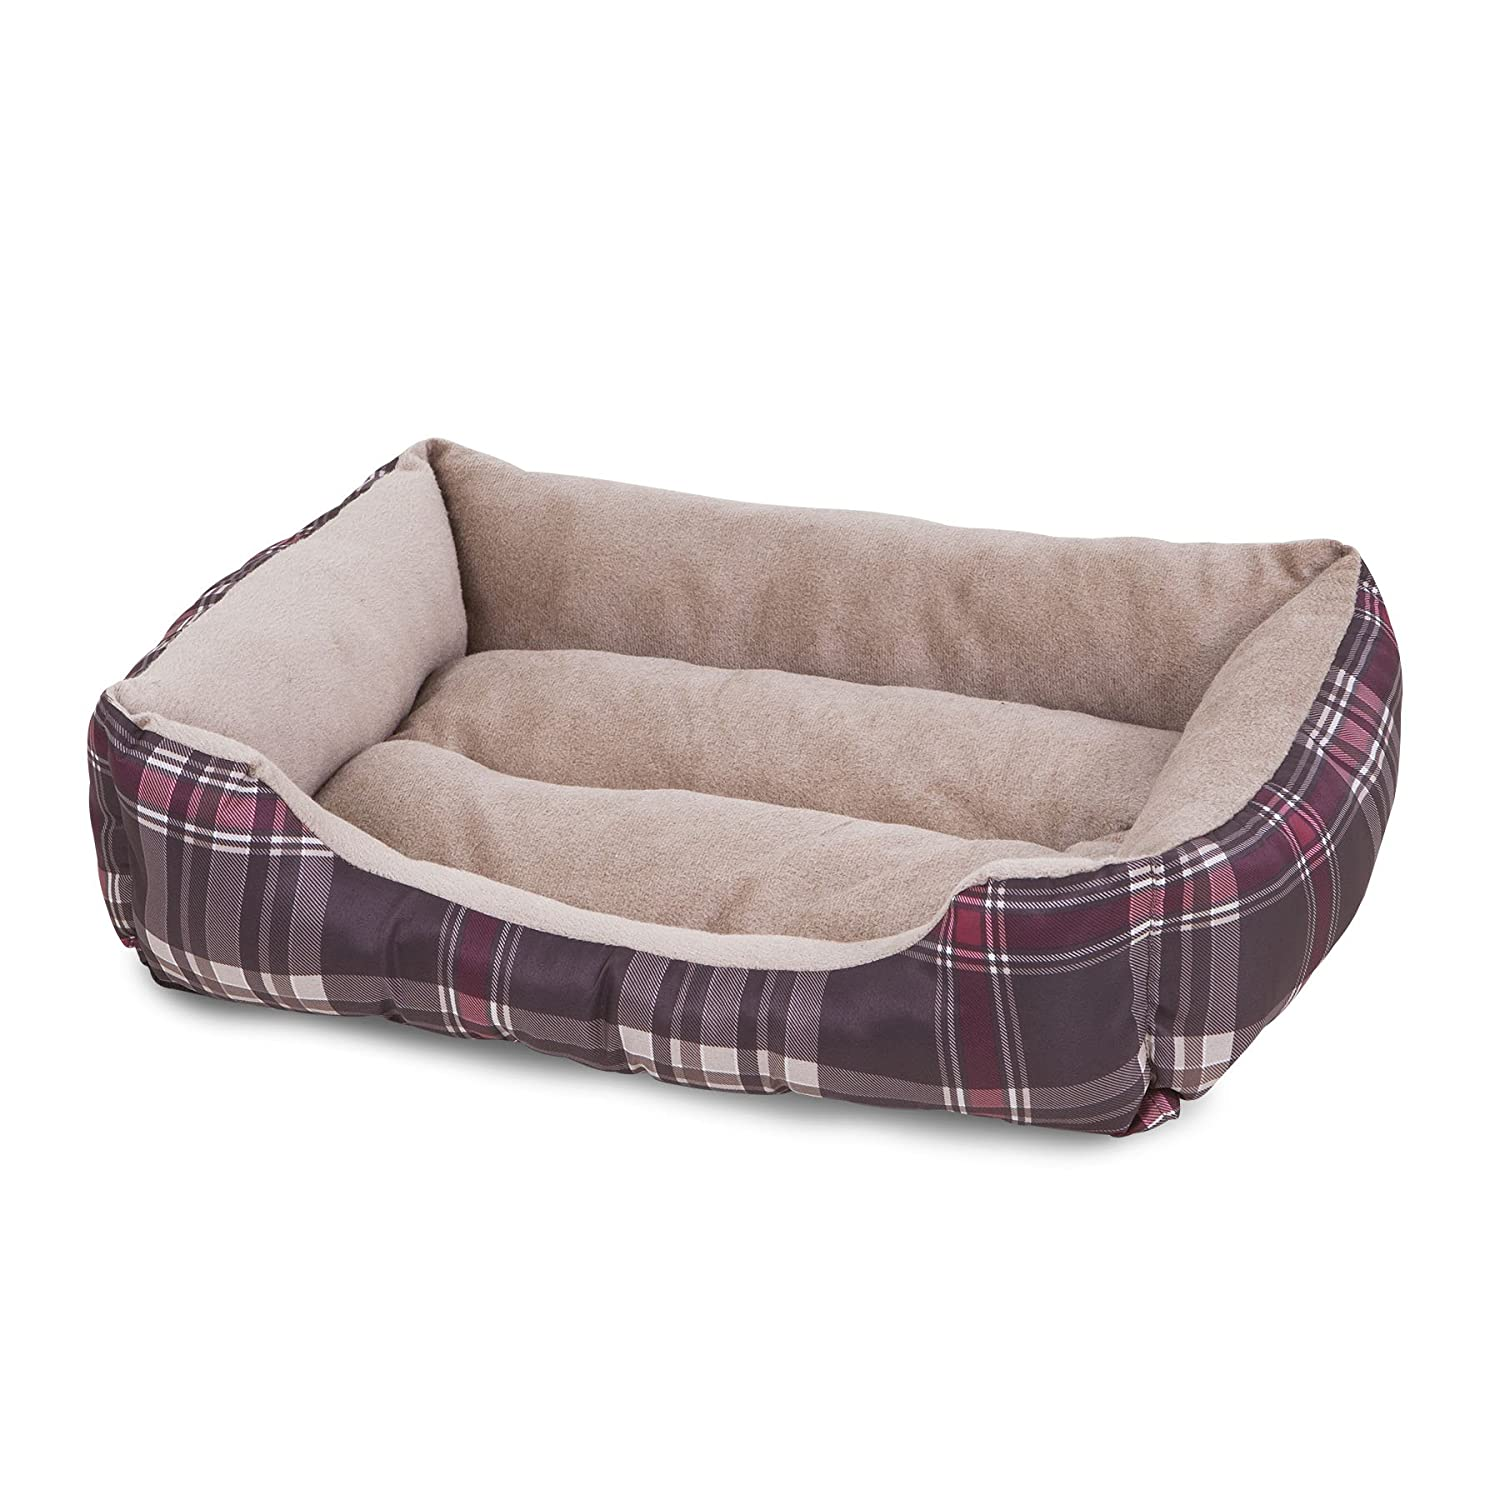 Aspen Pet Rectangular Lounger, 20 X 15, Assorted